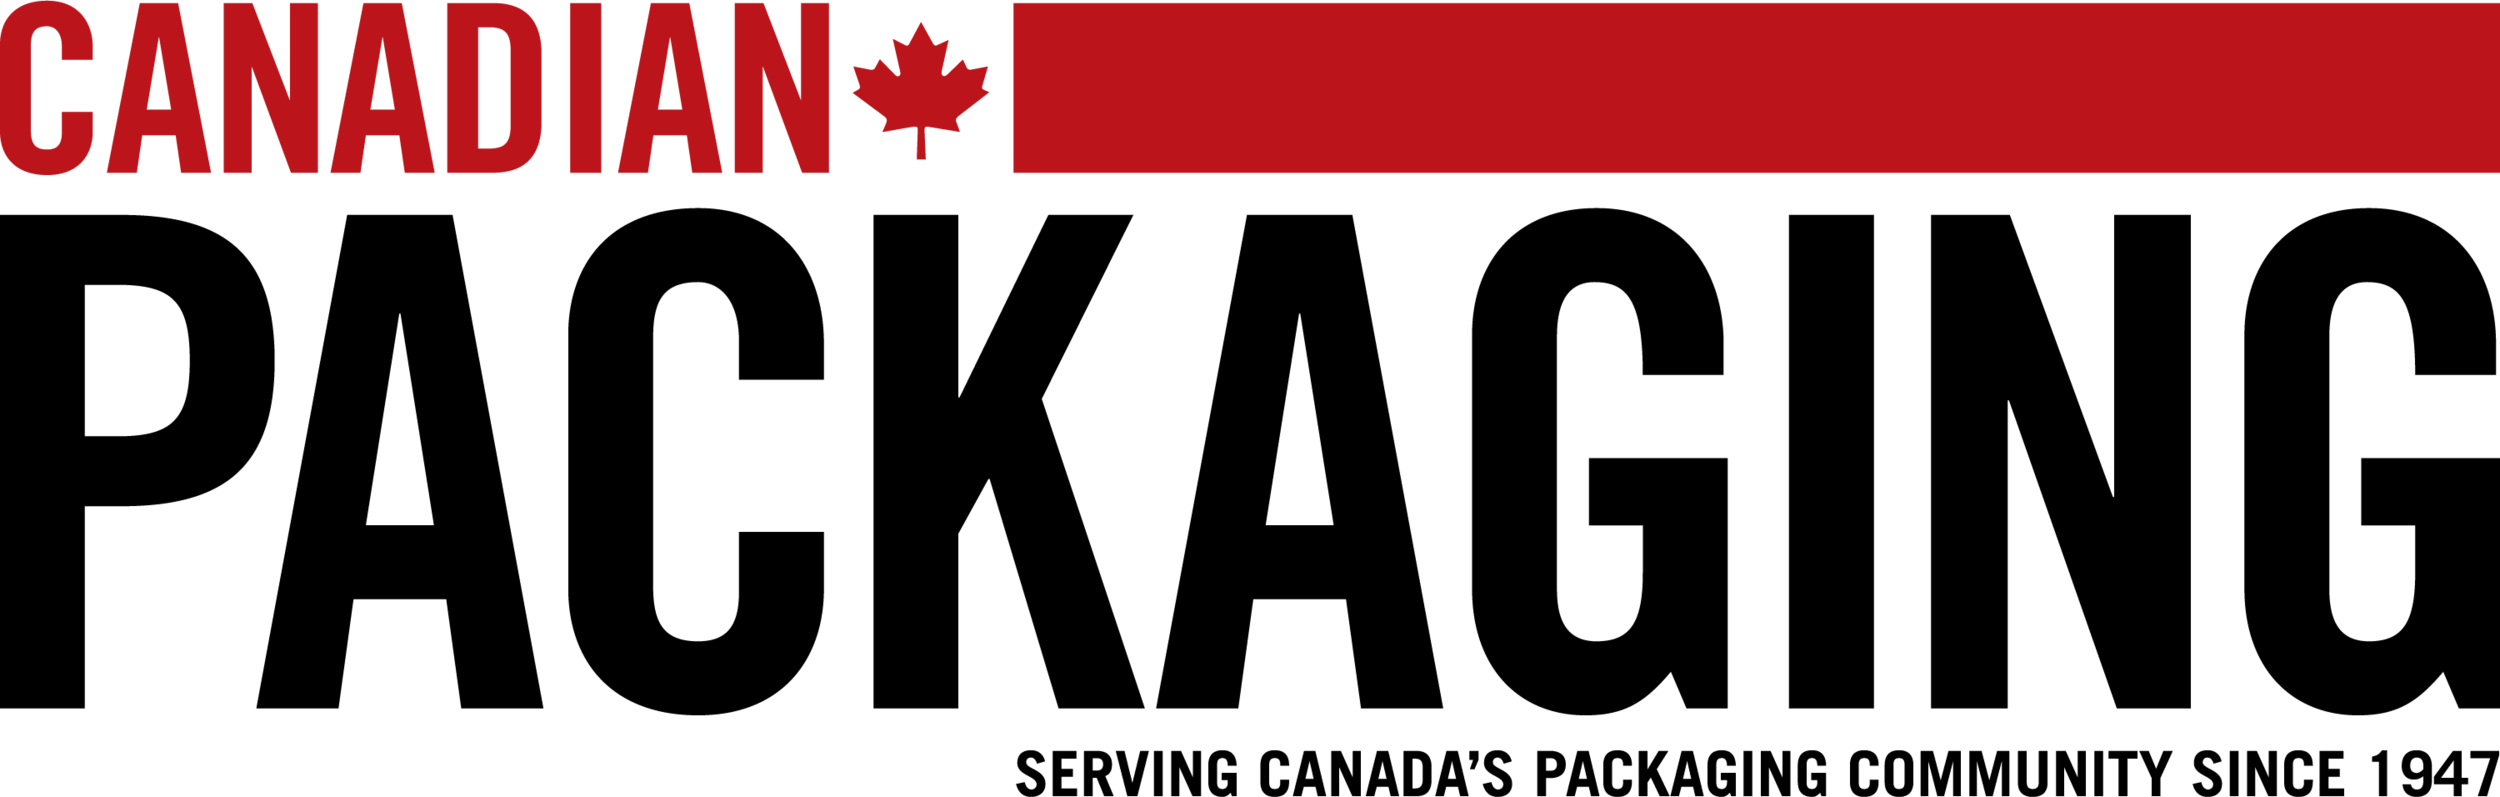 canadian_packaging_vector_logo.png